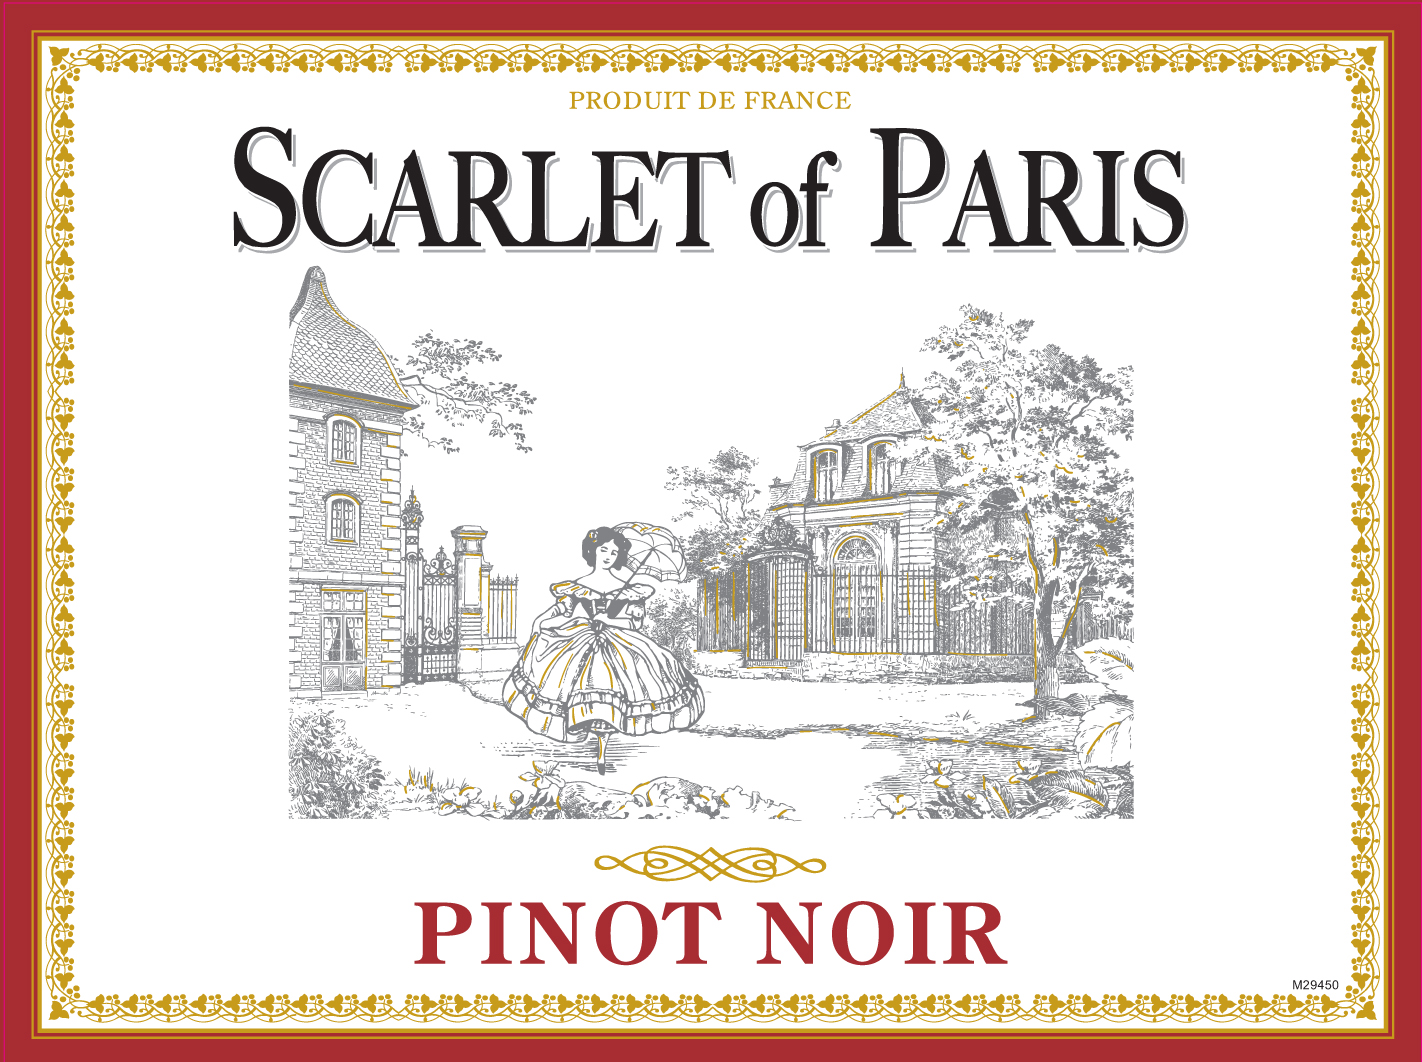 Scarlet of Paris Pinot Noir